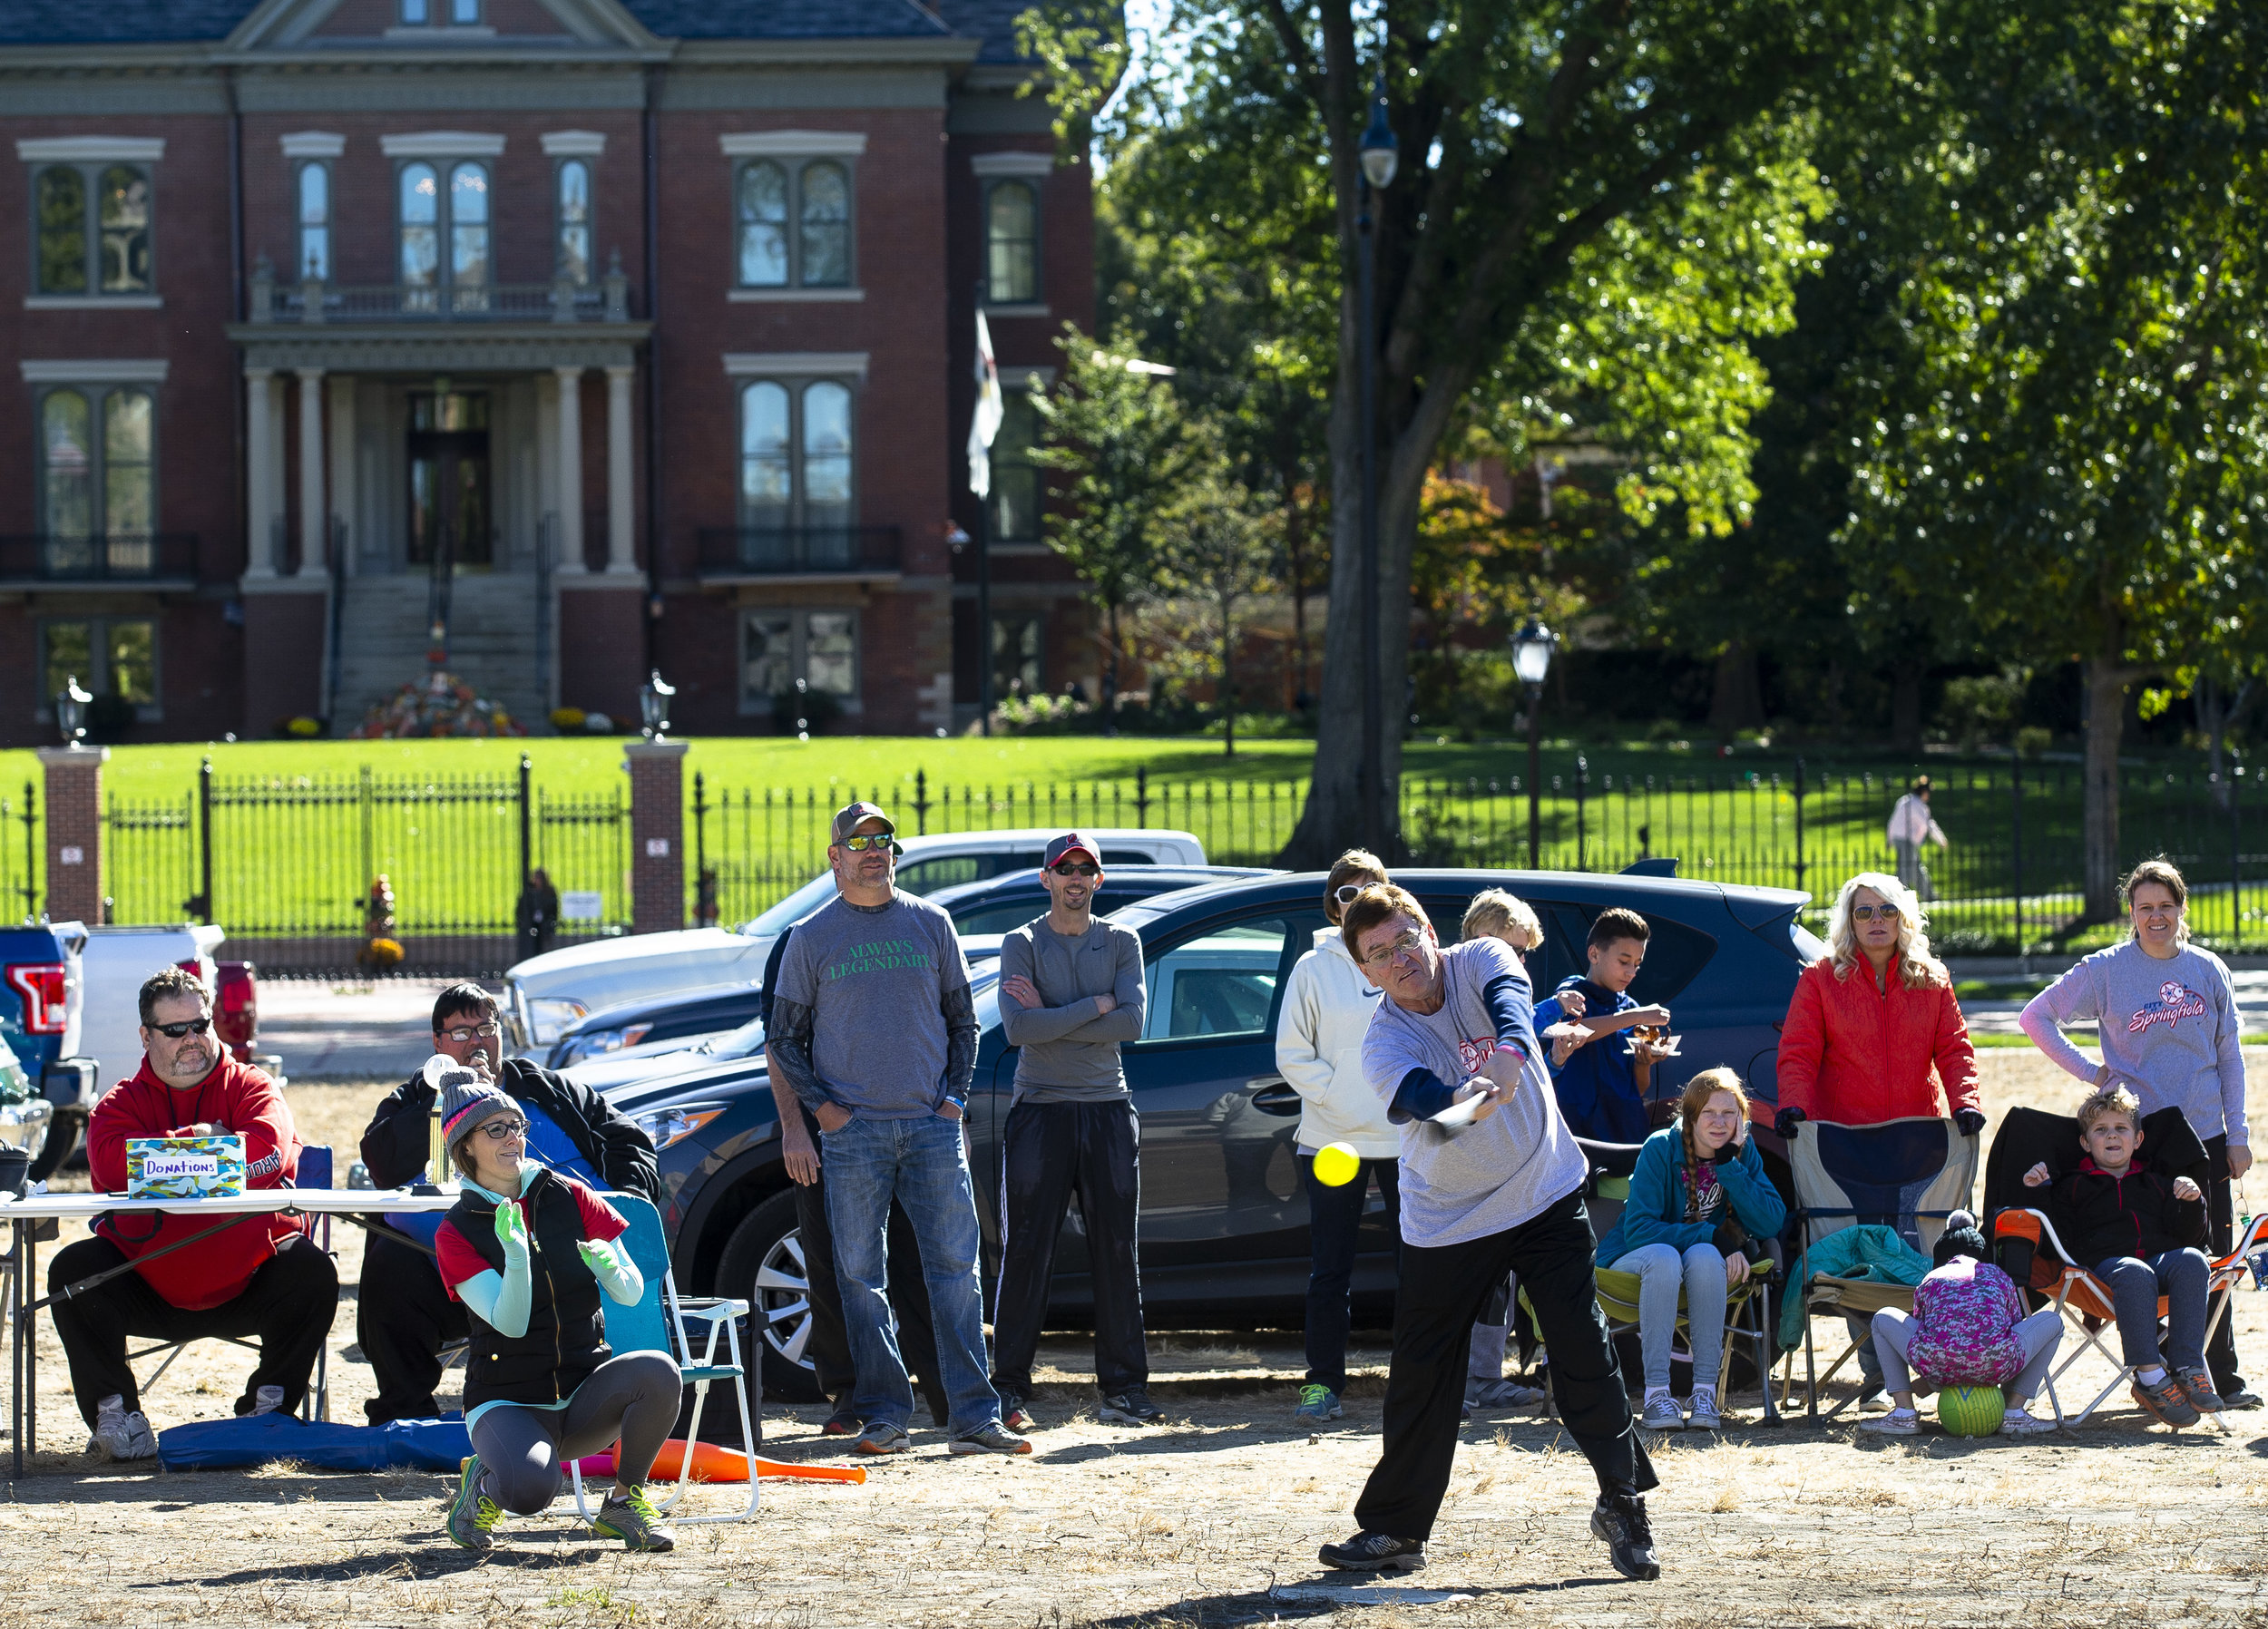 Mayor Jim Langfelder swings and misses at the plate during a whiffle ball game between city and county officials on the former YWCA block Sunday, Oct. 21, 2018 in Springfield, Ill. The city team topped the county 5-2, and then faced the winner of a game between radio and television news personalities, which they won 11-3. Money raised from the game will benefit the Land of Lincoln Honor Flight. Go to www.sj-r.com to see more pictures. [Rich Saal/The State Journal-Register]